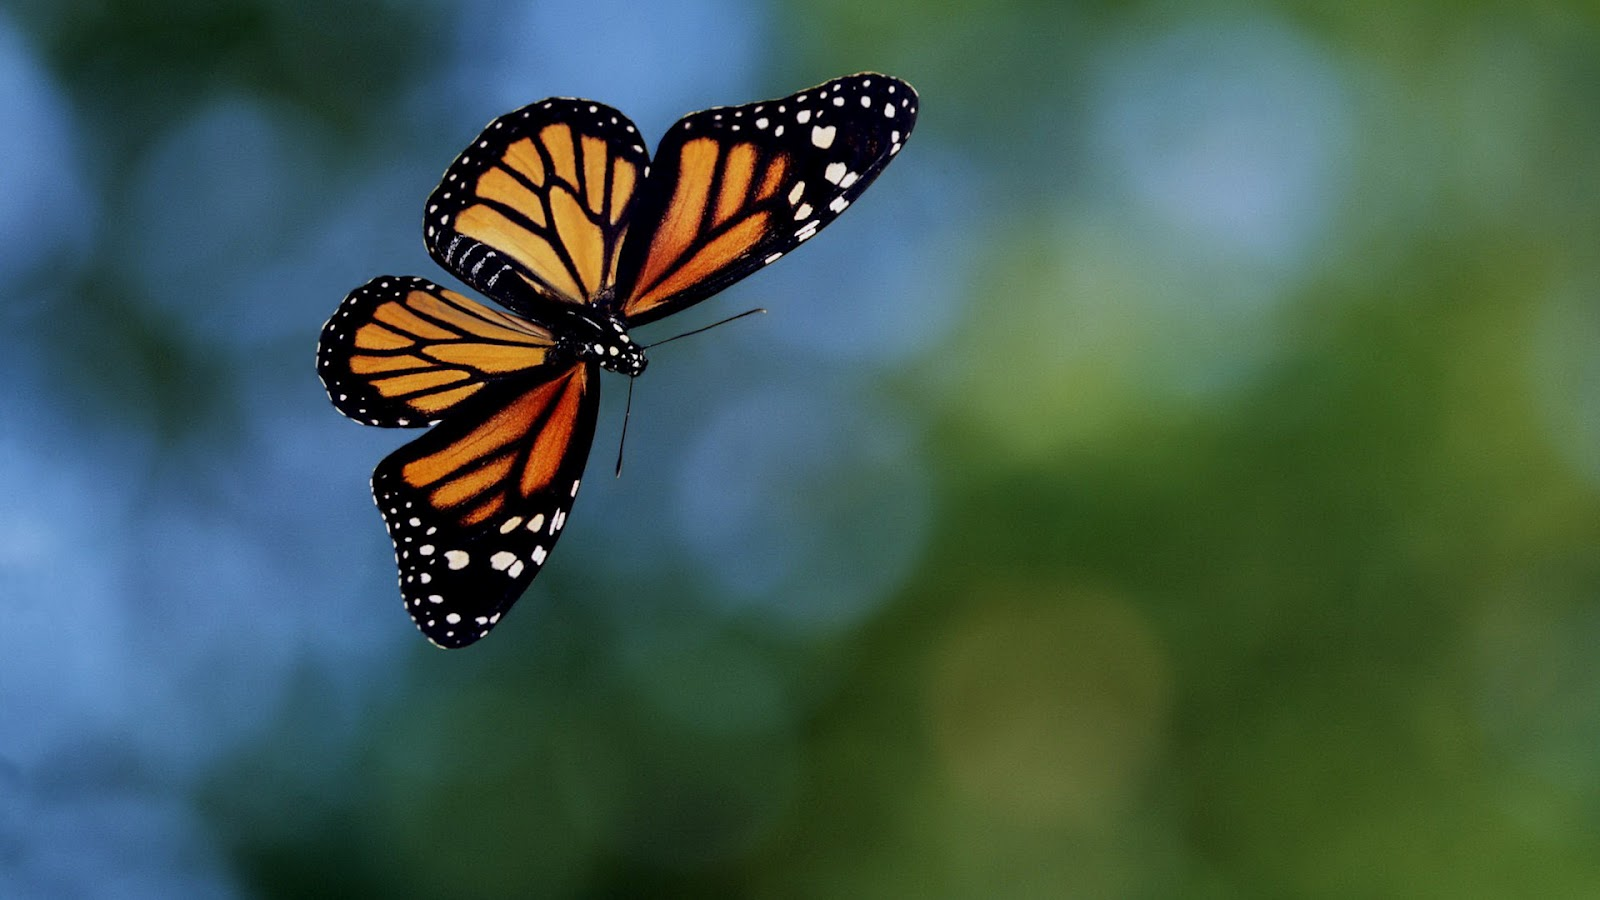 butterfly wallpapers flying - photo #1